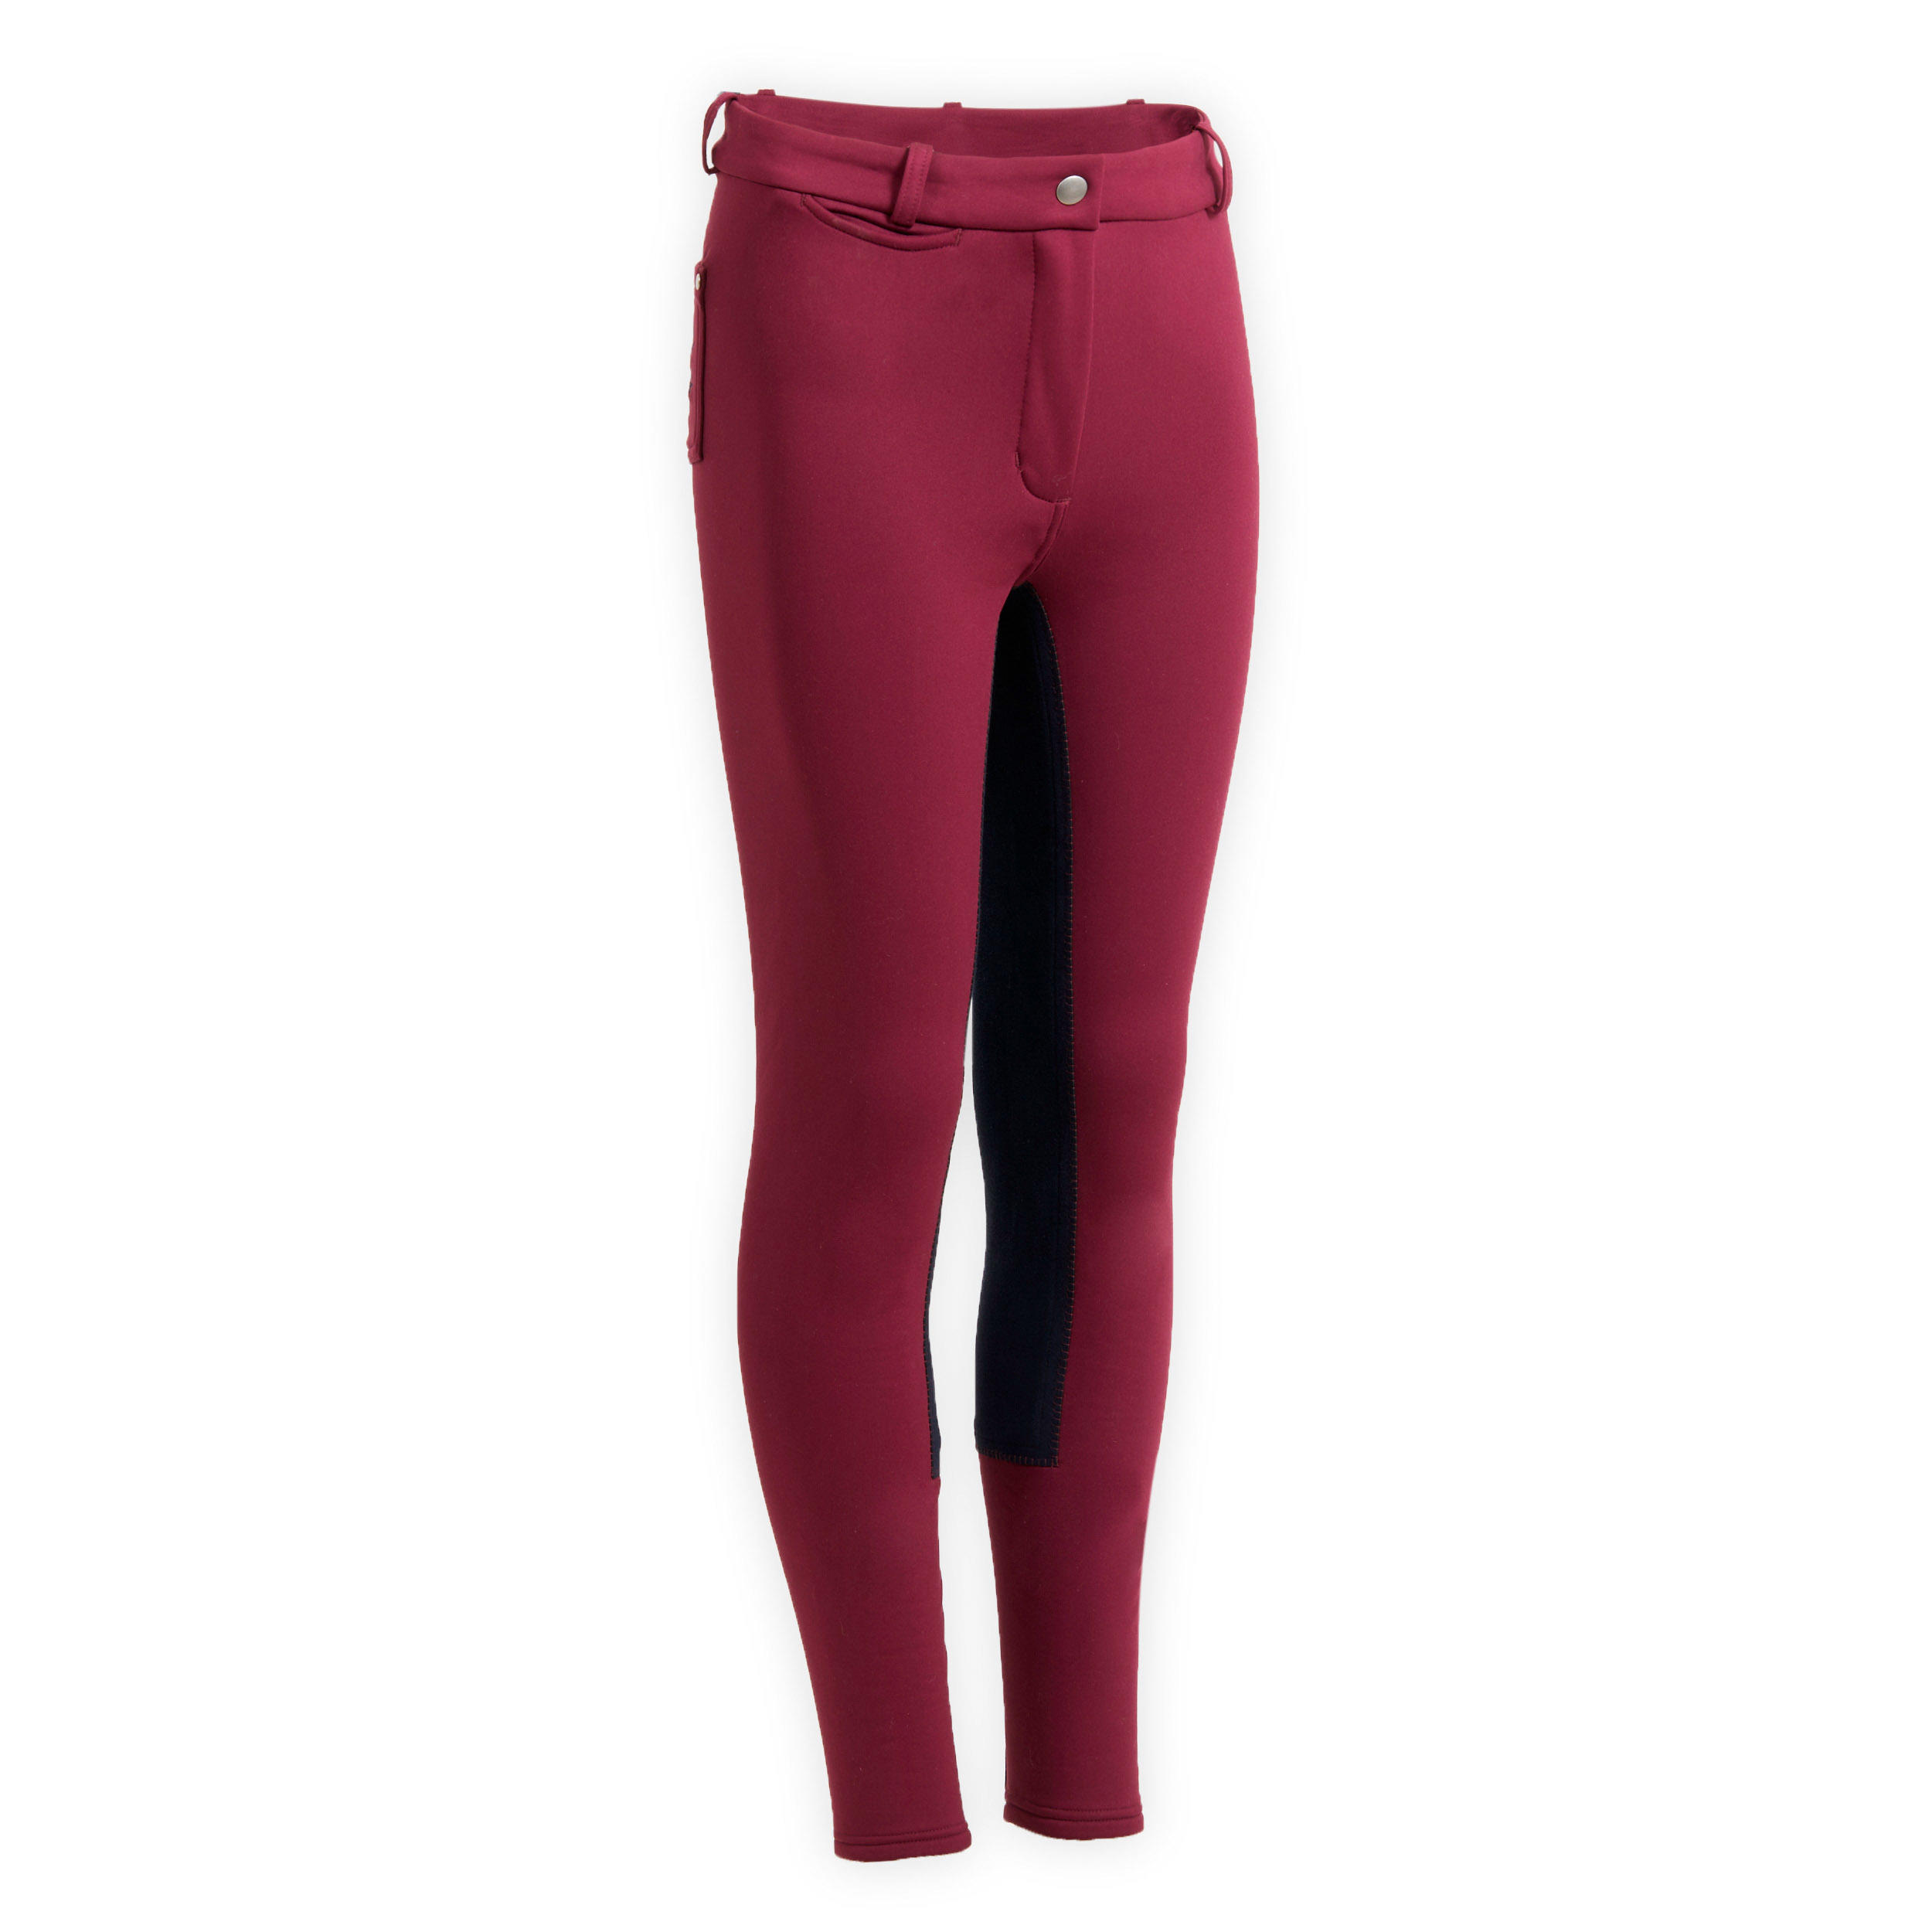 Pantalon 180 WARM Copii imagine produs